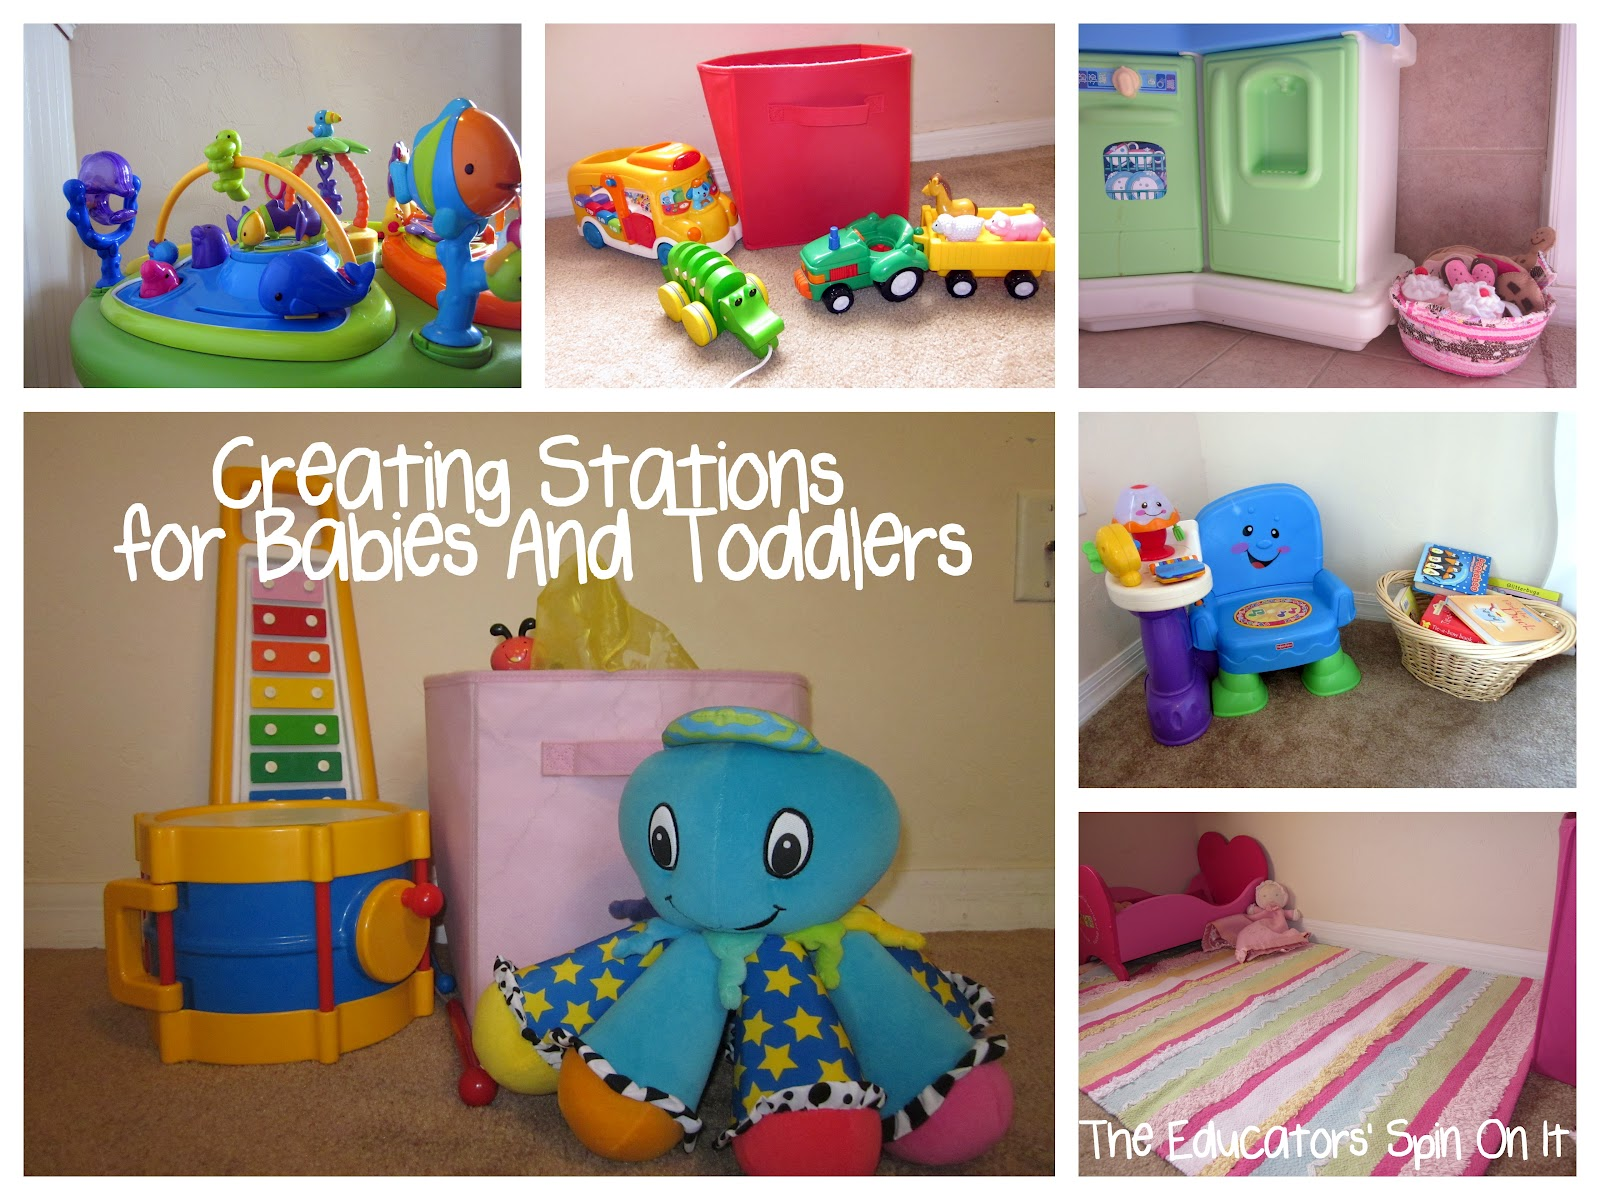 Day Care Toys : Ideas for creating and storing toy stations the